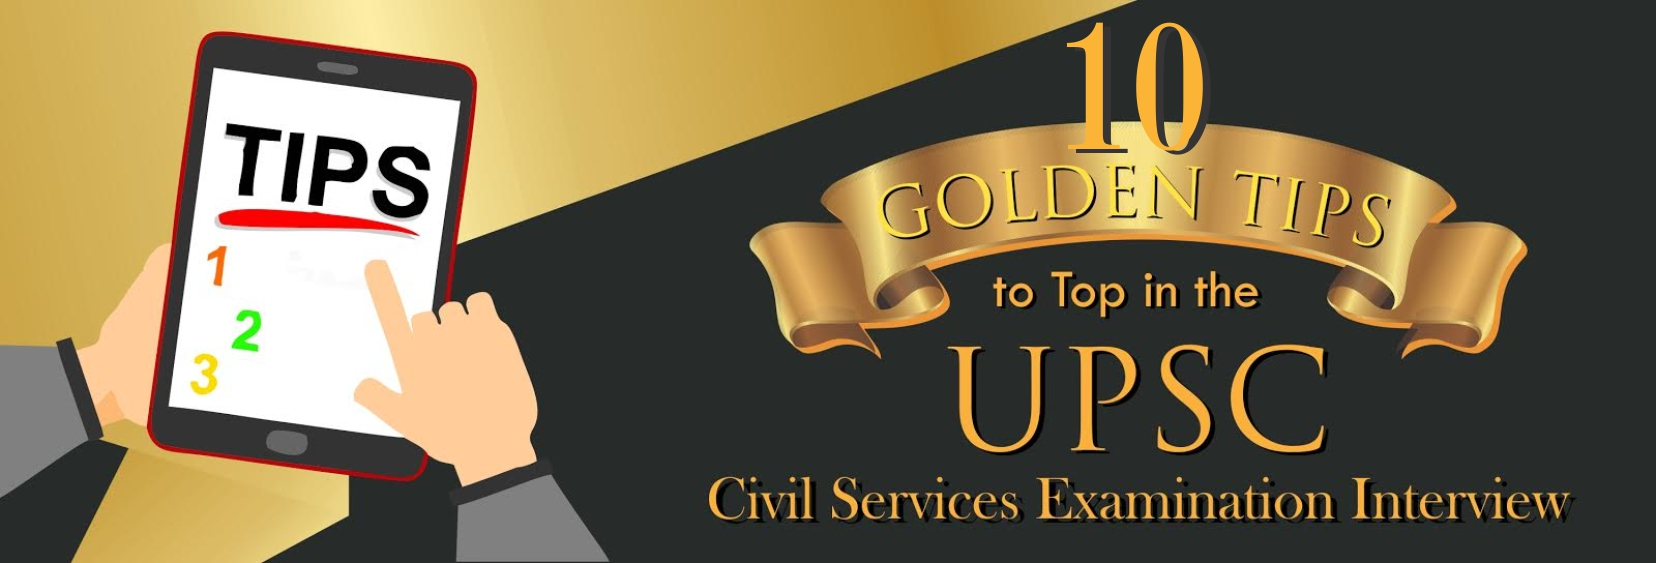 10 Golden tips to top in the UPSC Civil Services Examination Interview